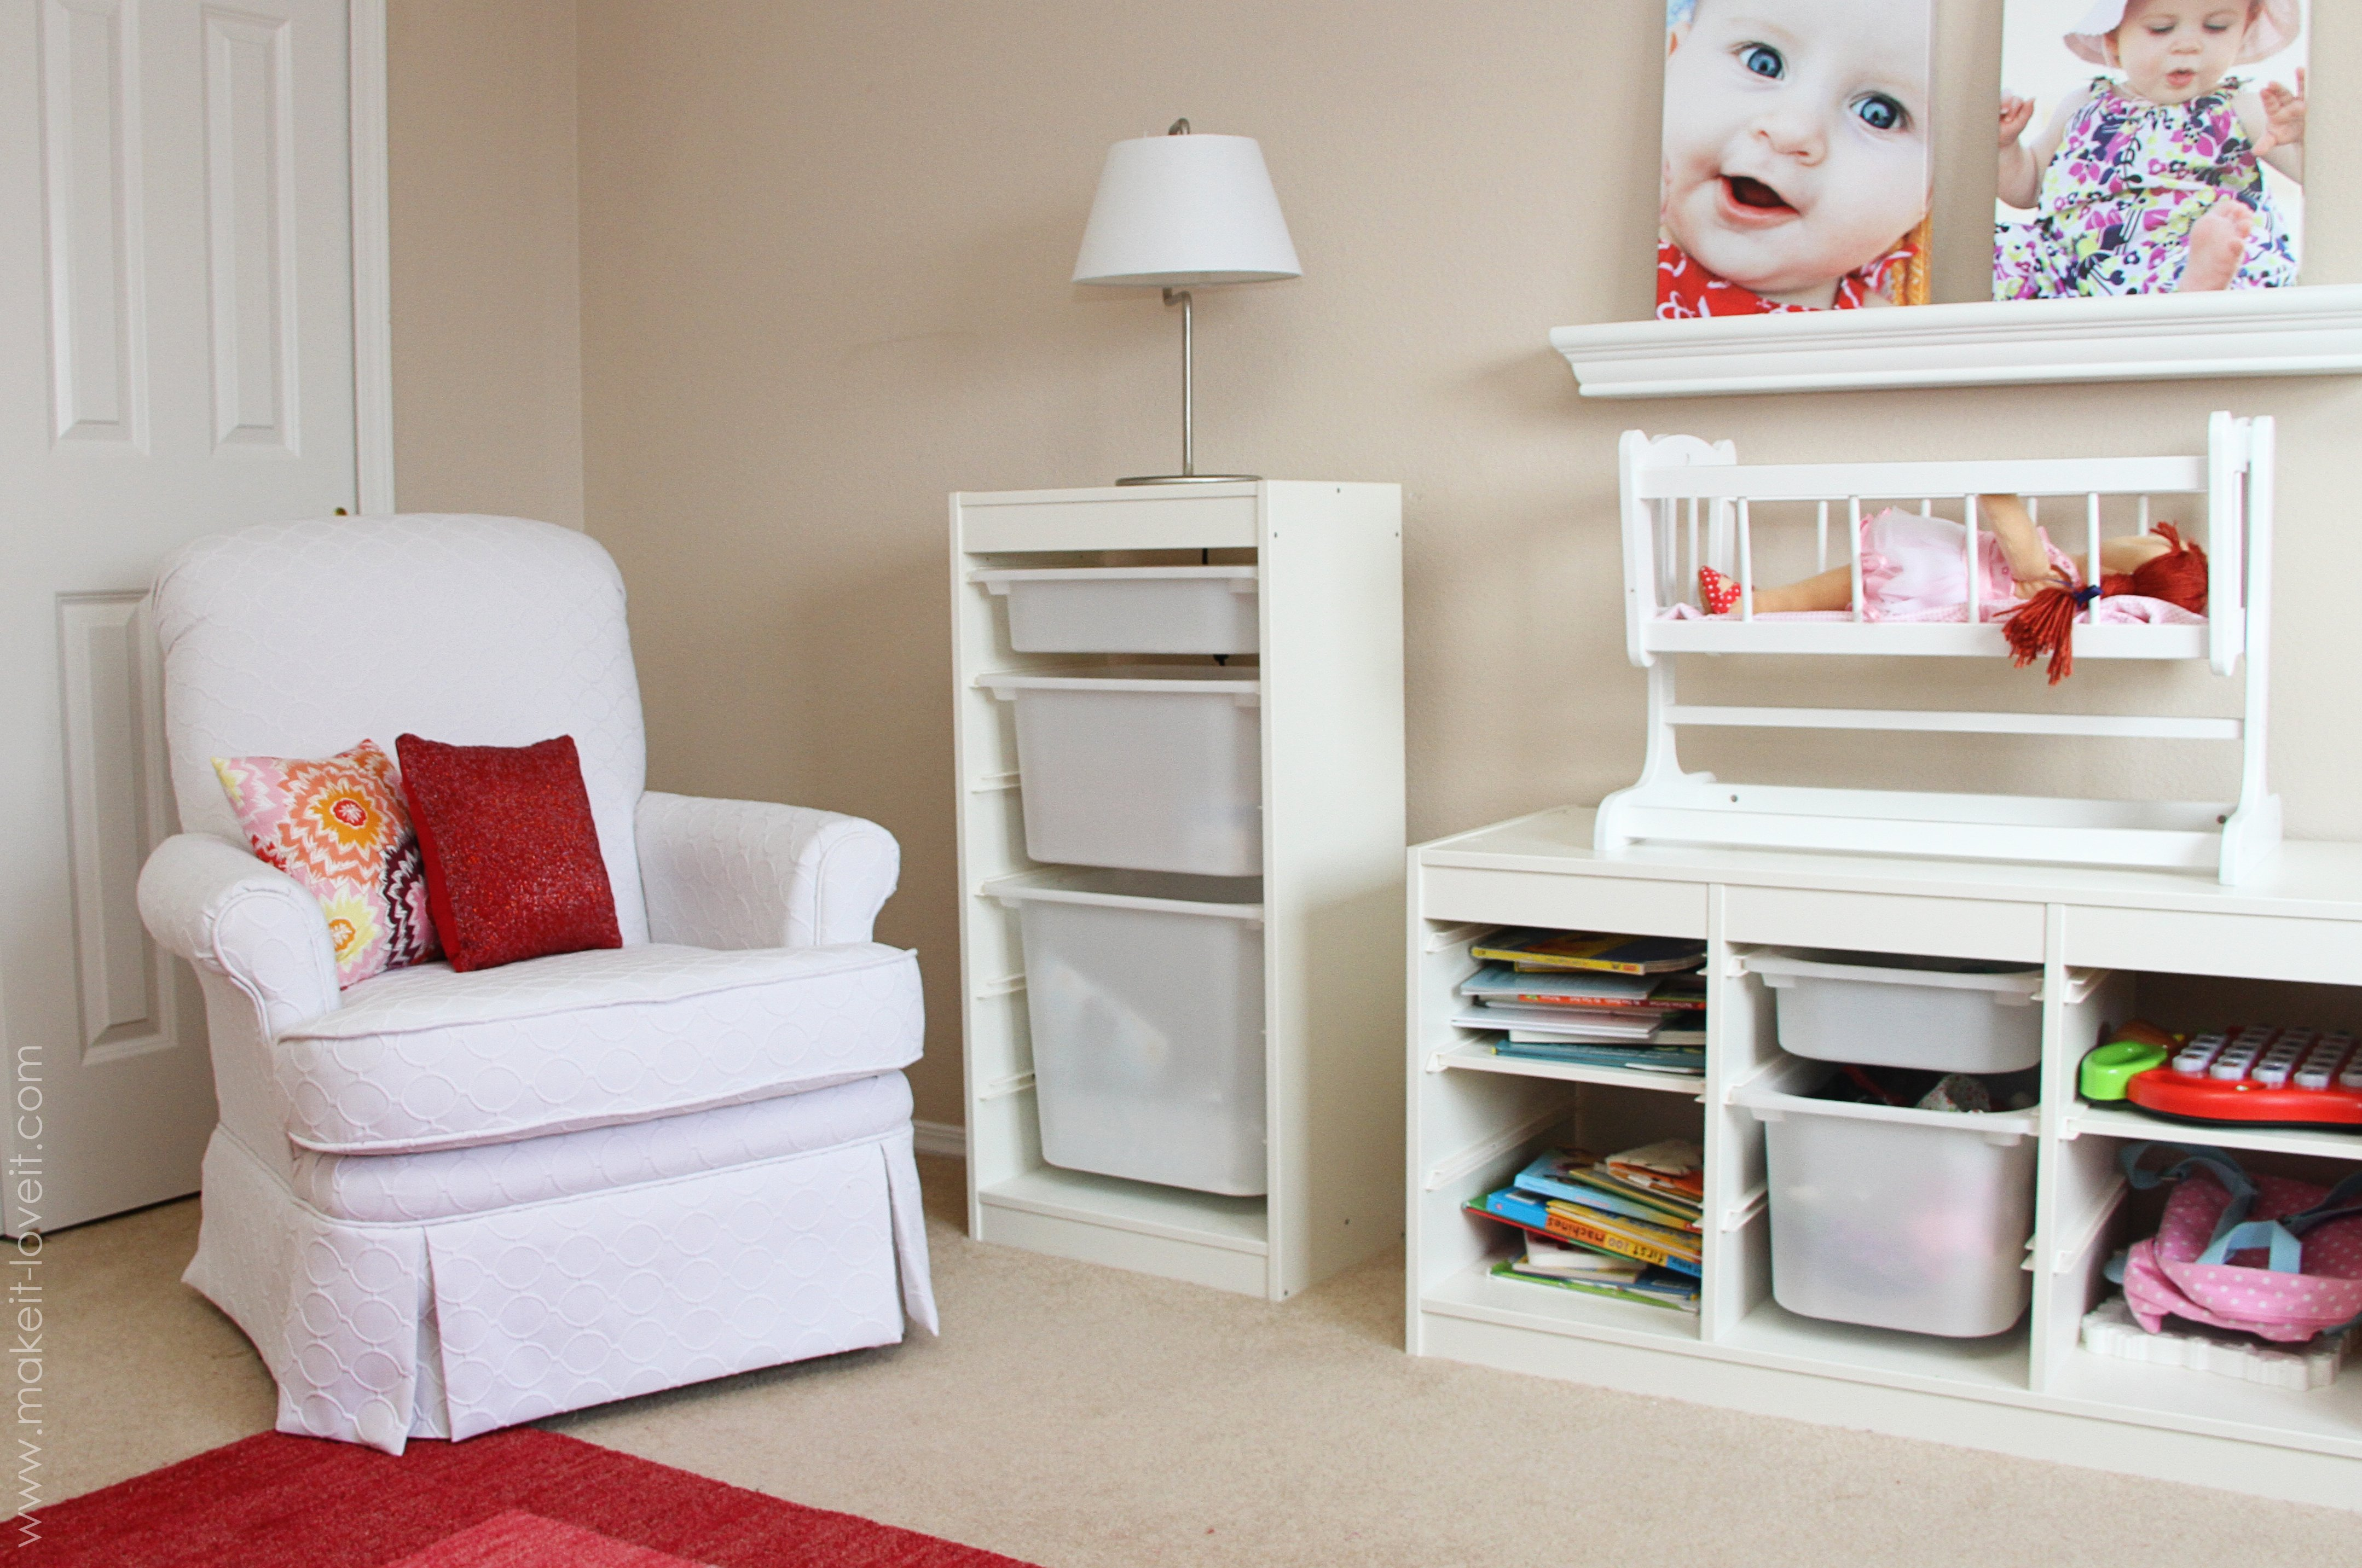 Ikea Storage With Tubs And Shelves